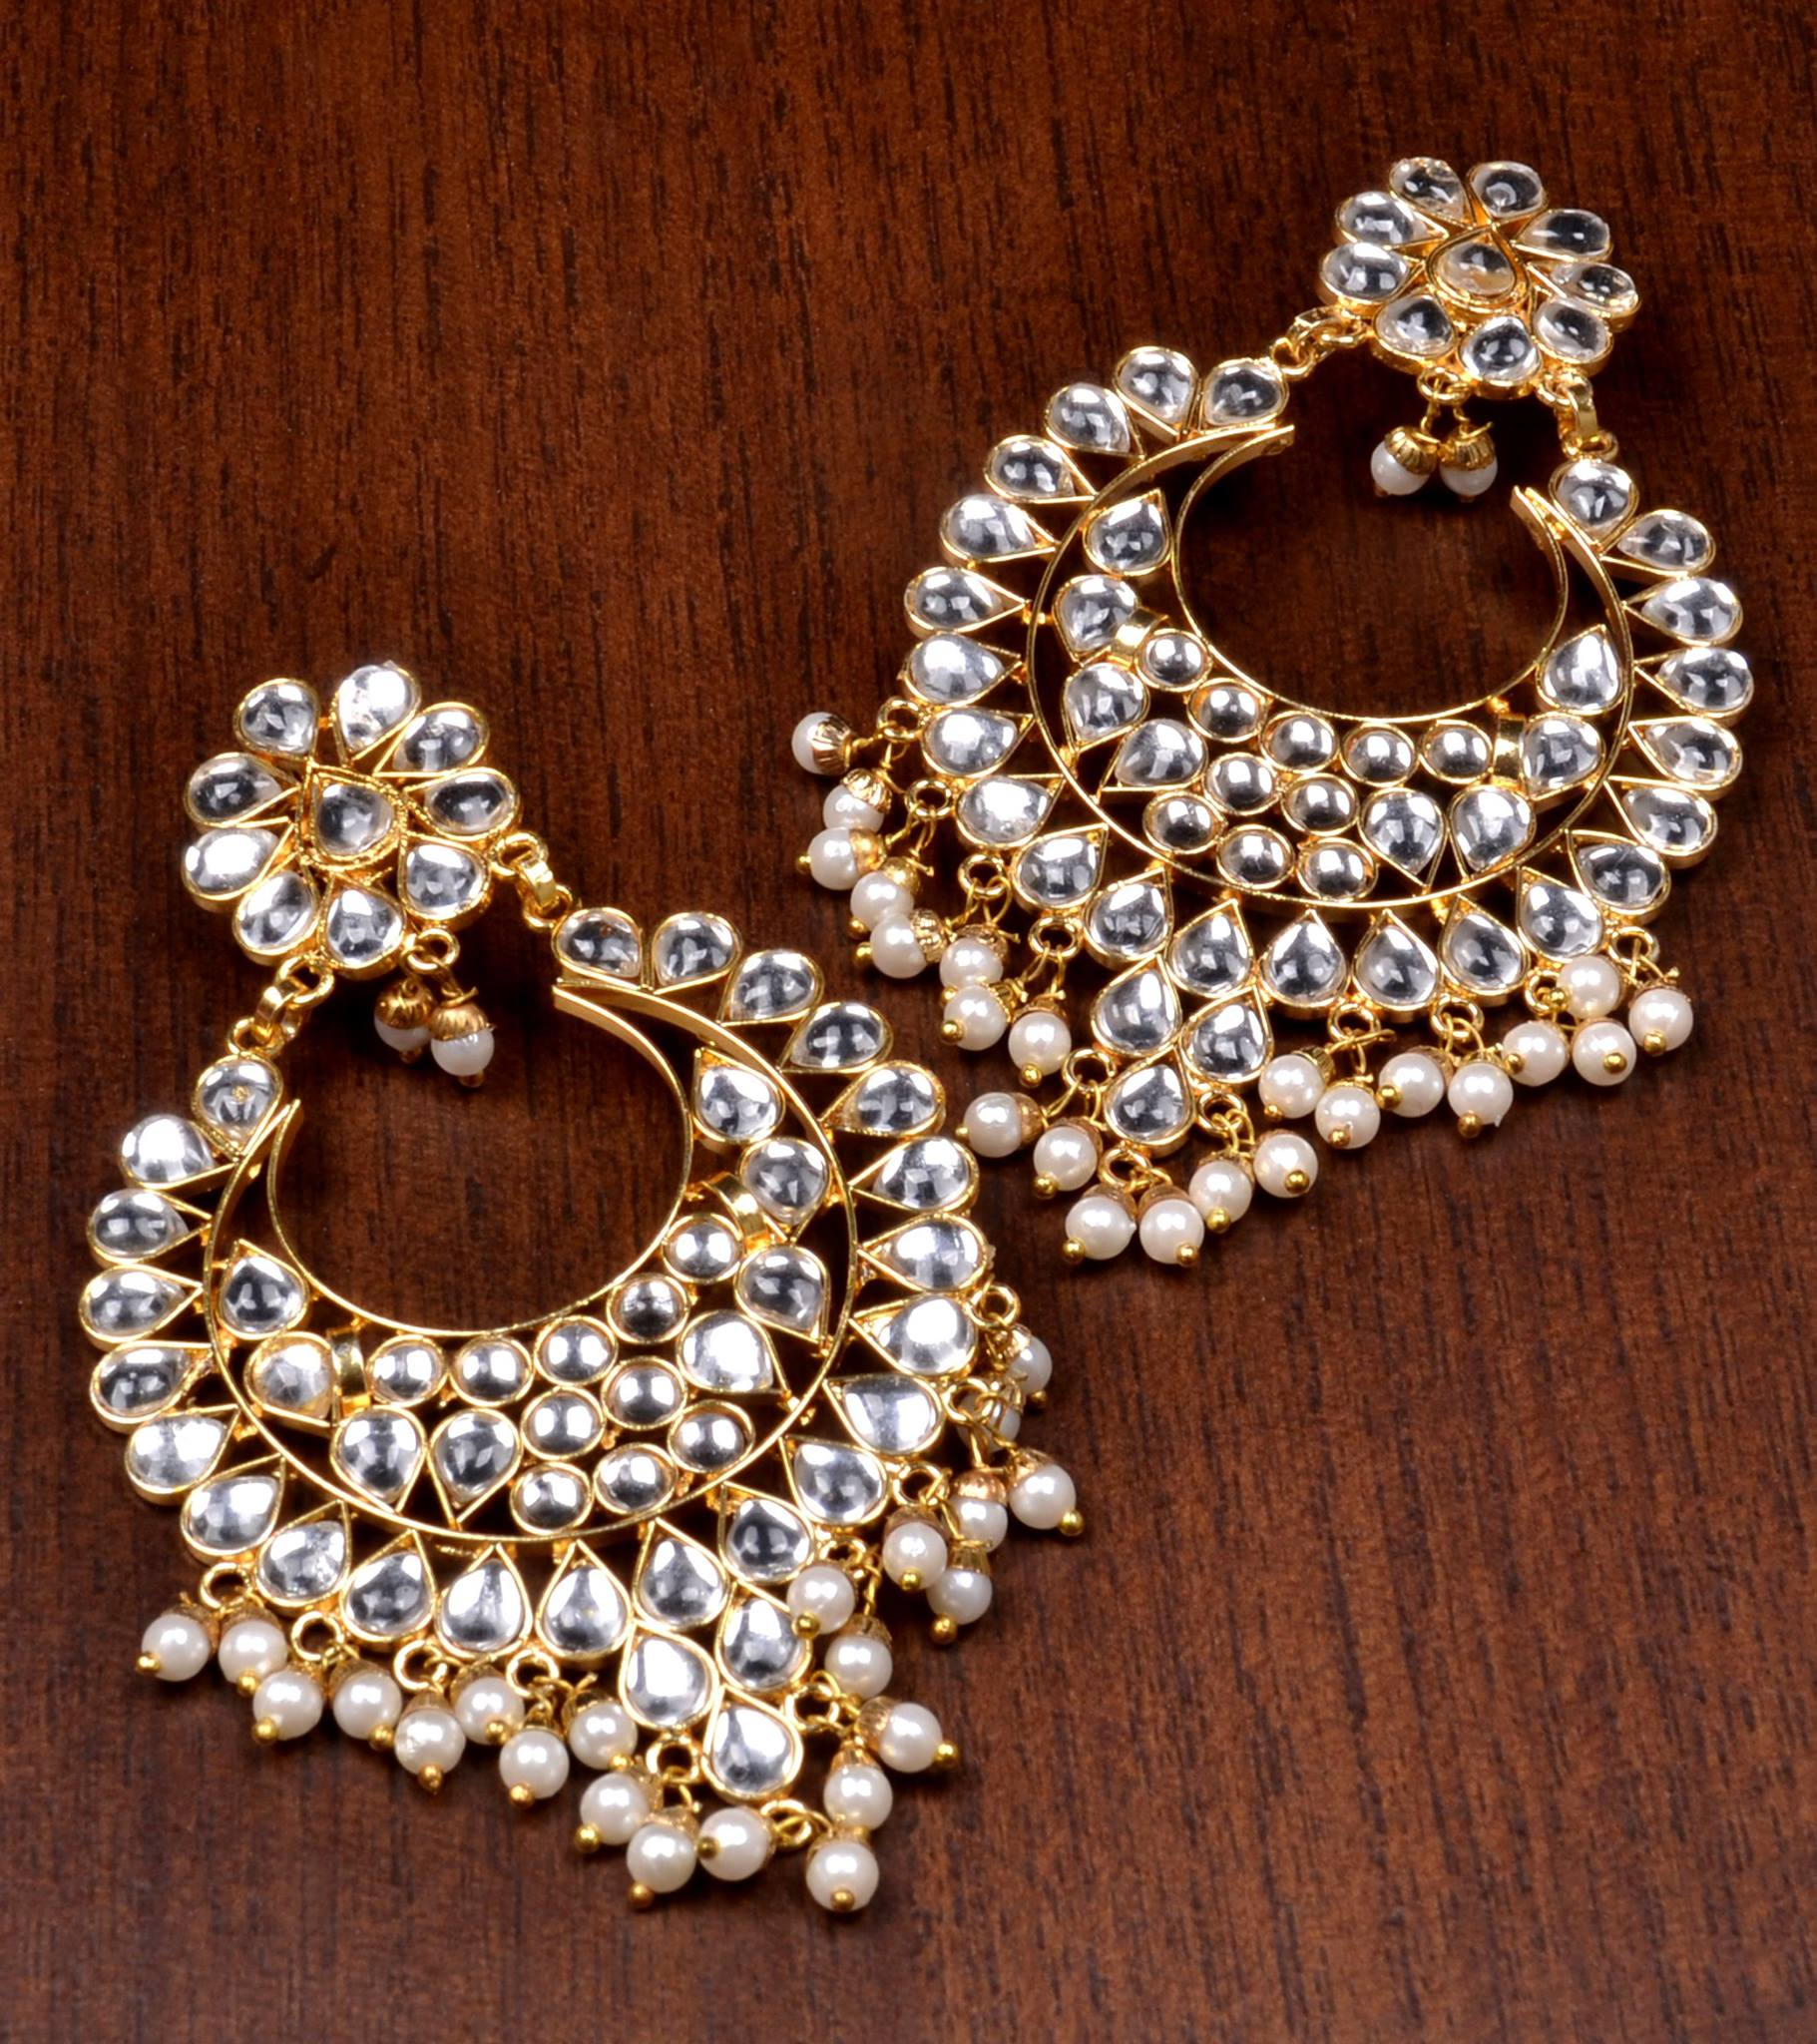 vary y hoops slightly earrings ct photographic diamond to monitor bali may lighting designs gold daily sources party your wear certified colour p real due settings or jewelry